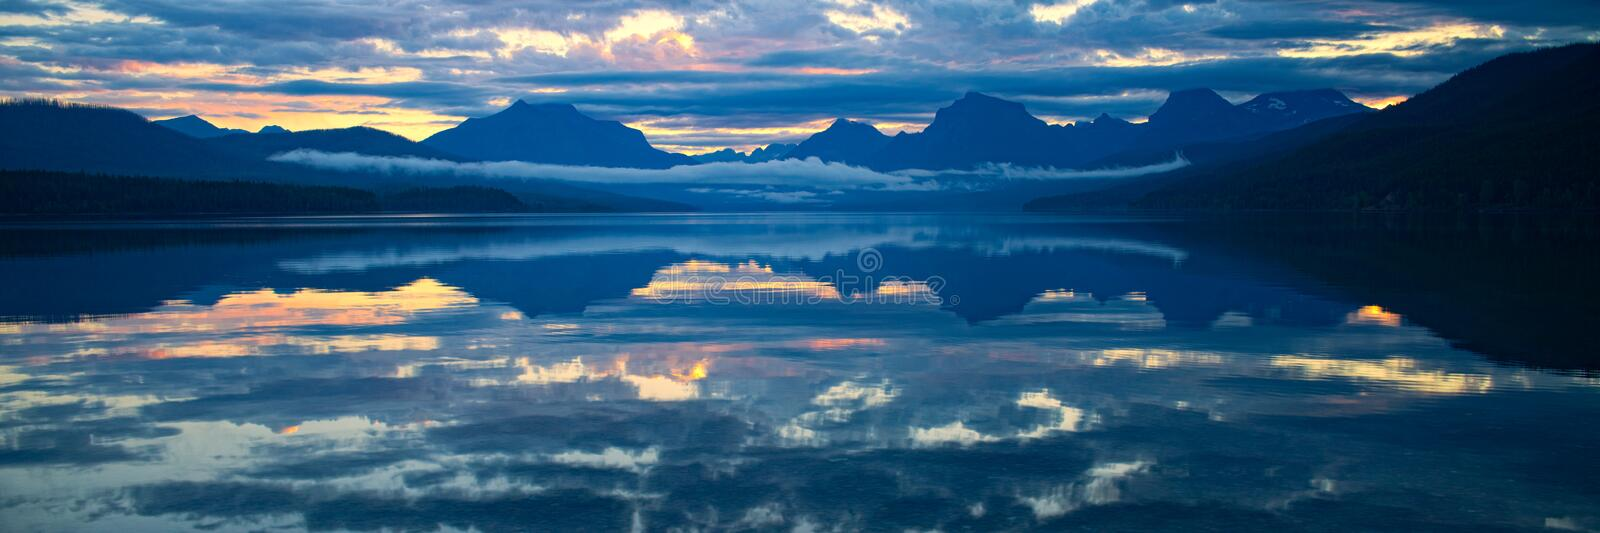 Lake McDonald in Glacier National Park, Montana, USA royalty free stock photos